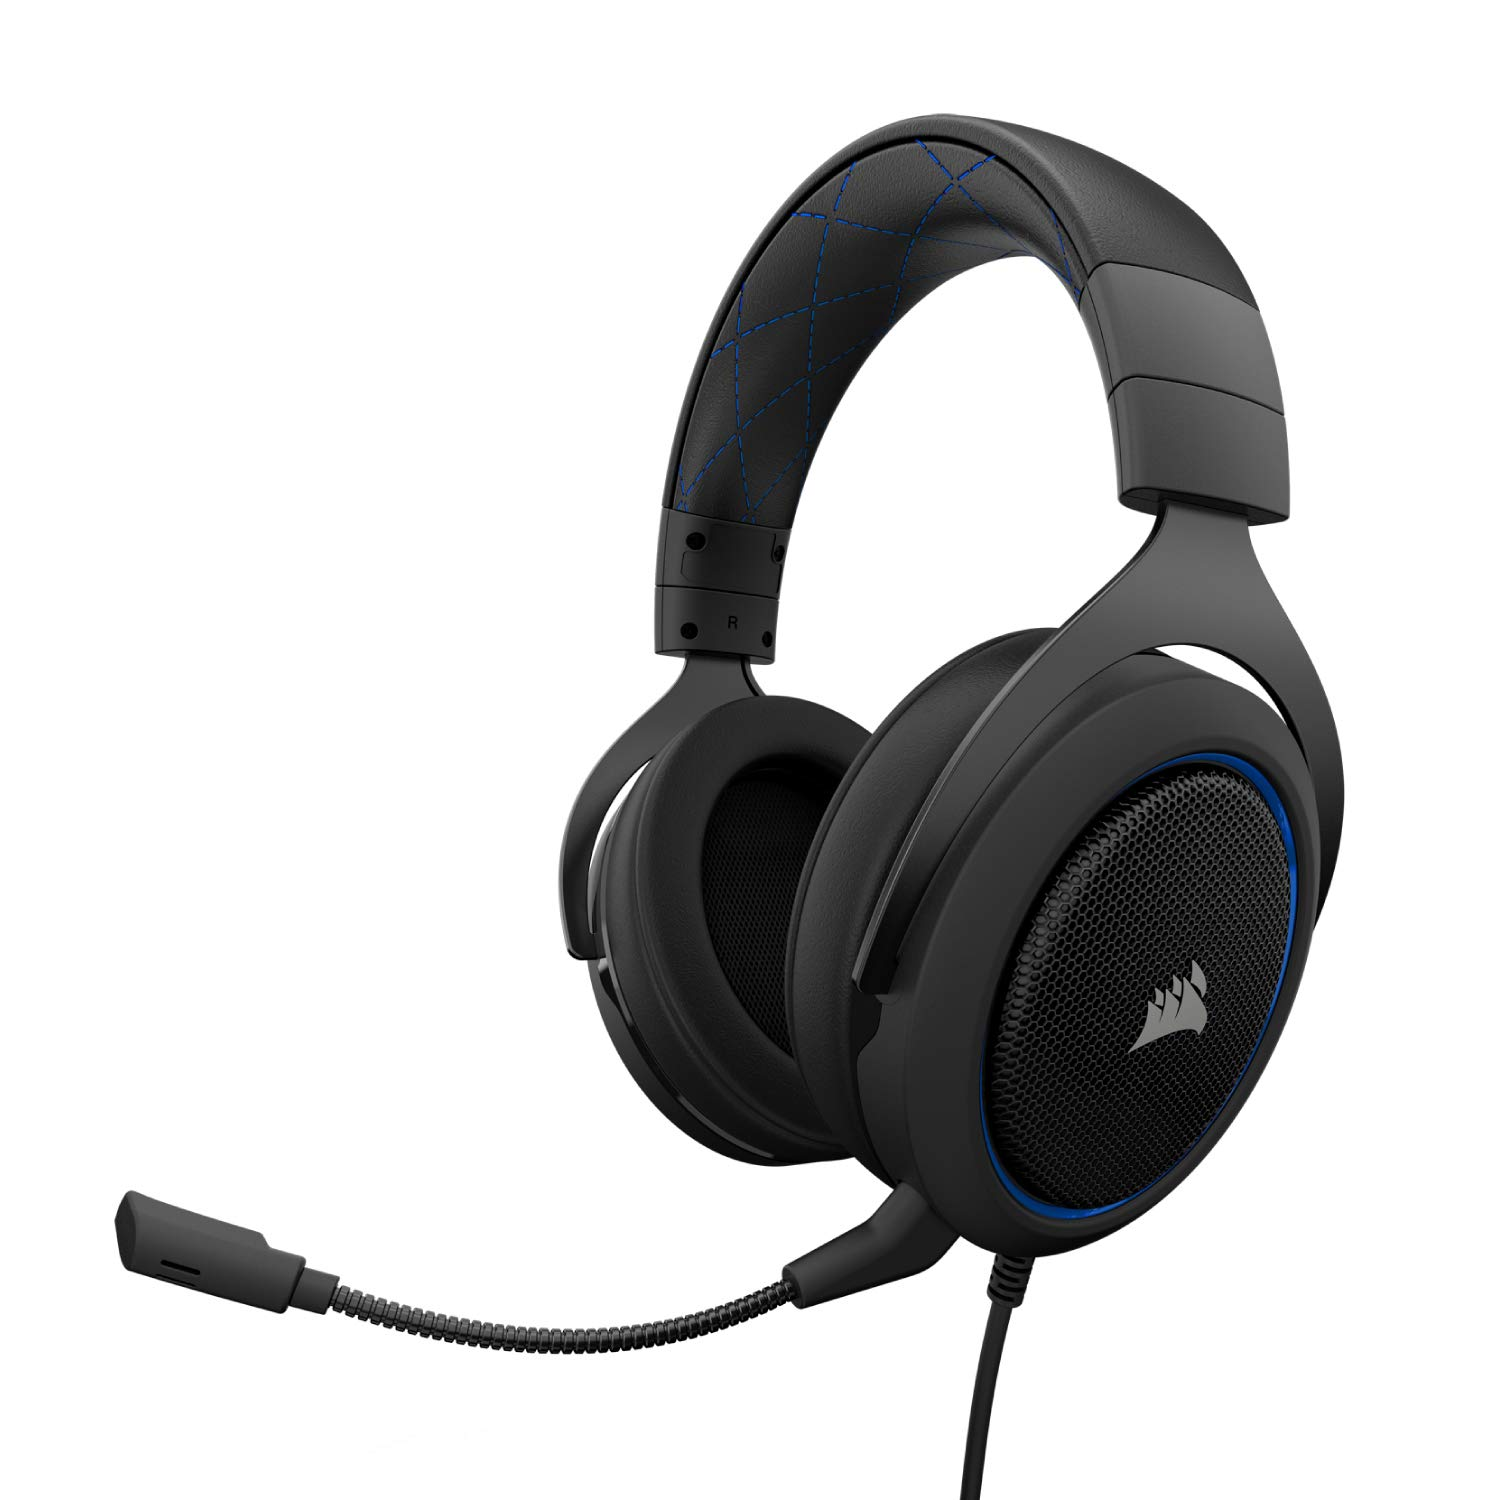 Corsair Gaming Headset amazon